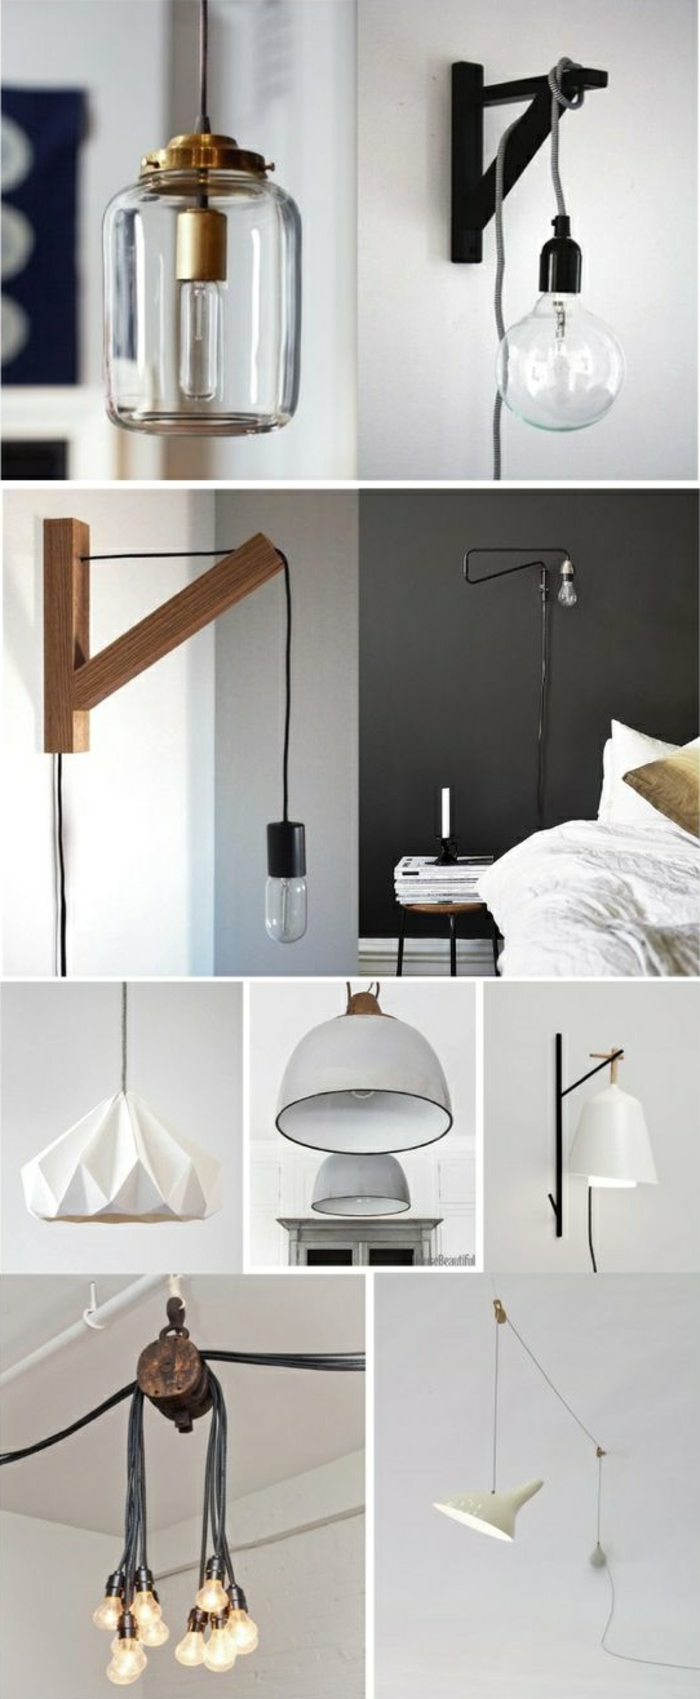 lampen schlafzimmer ideen ideen f r die innenarchitektur. Black Bedroom Furniture Sets. Home Design Ideas